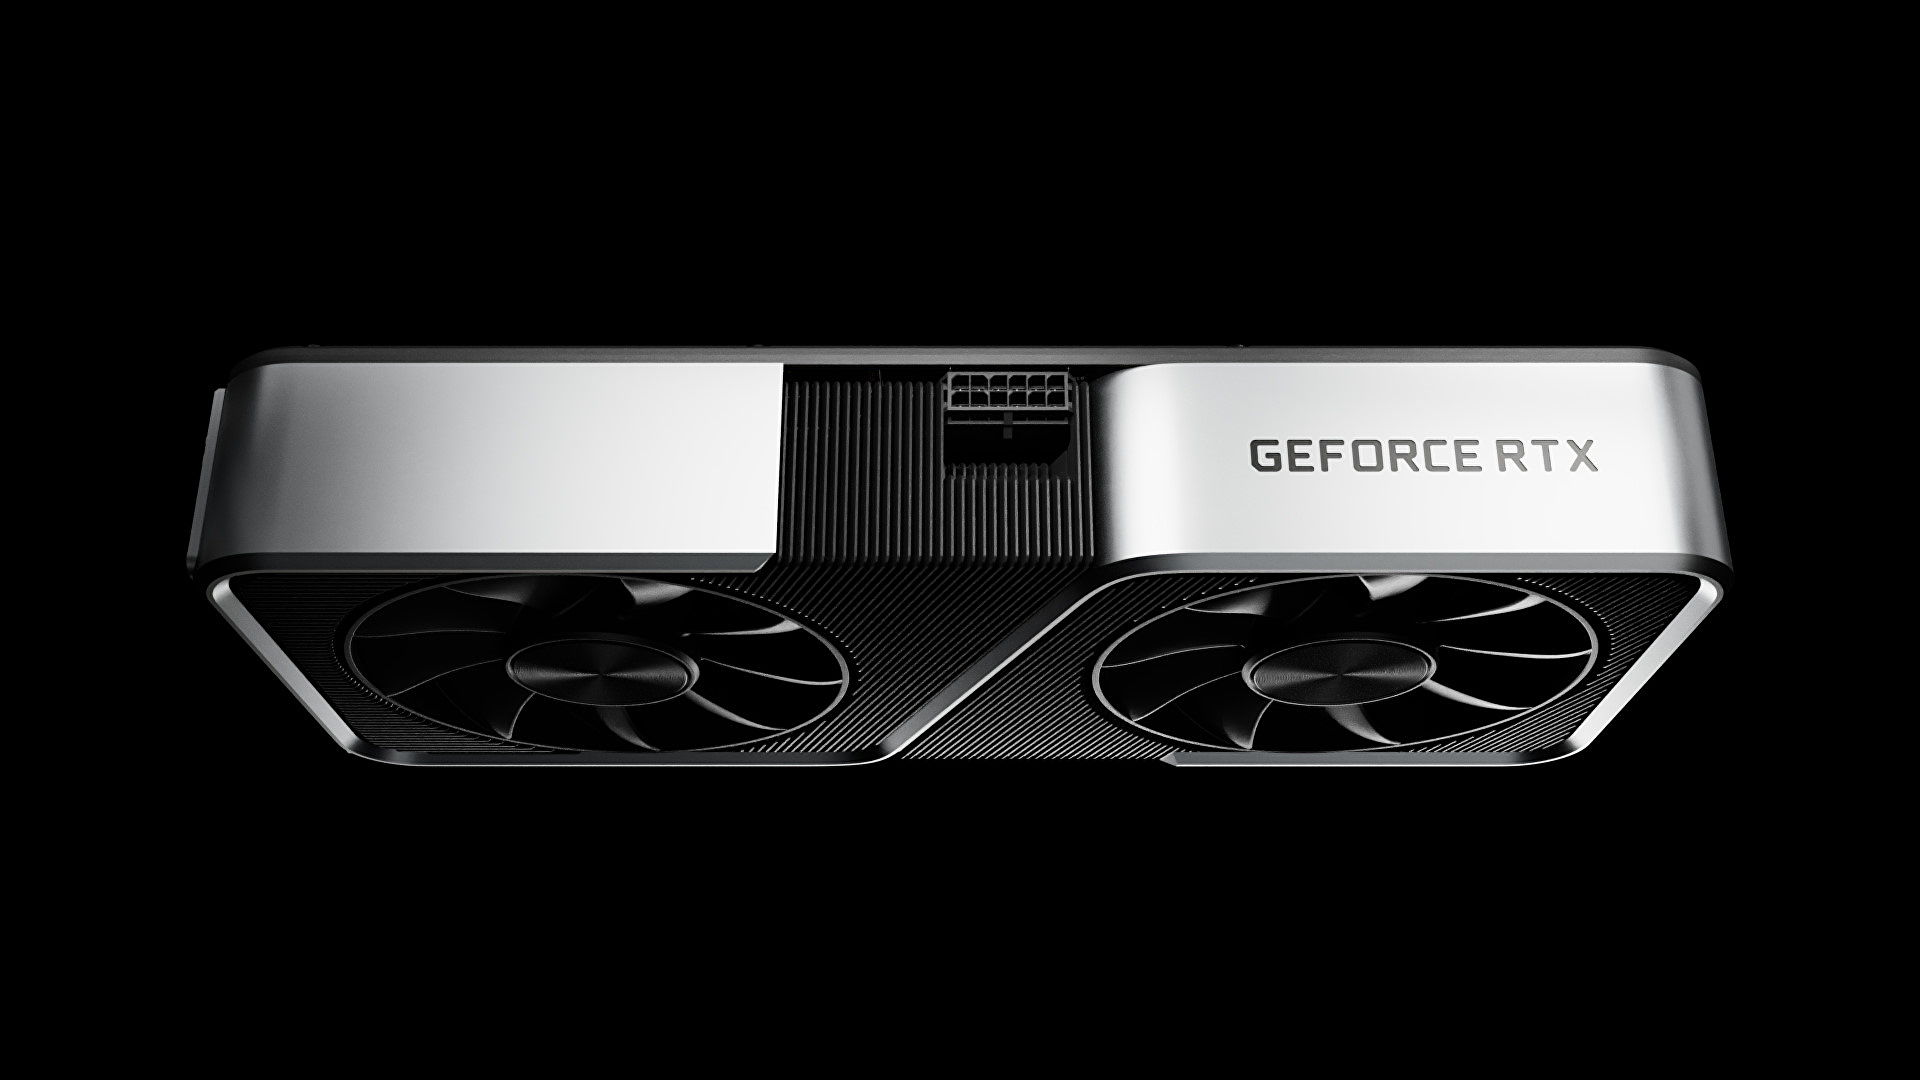 Report: Nvidia RTX 3060 release dated for Feb 25th